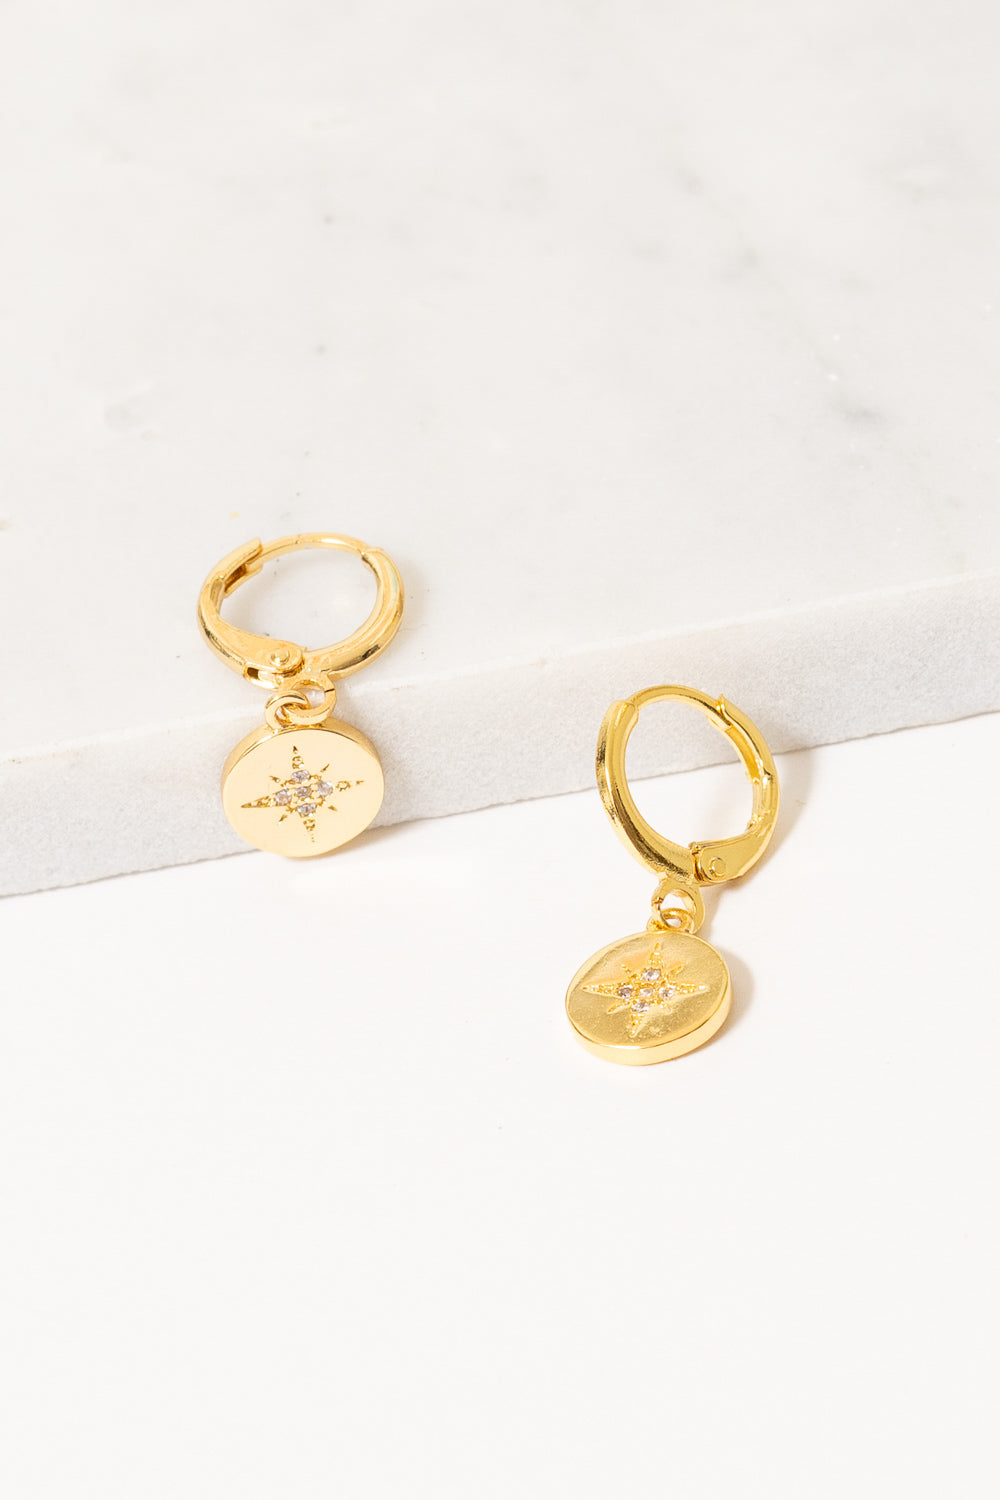 gold huggie hoop earrings with starburst charm dangles by Janna conner